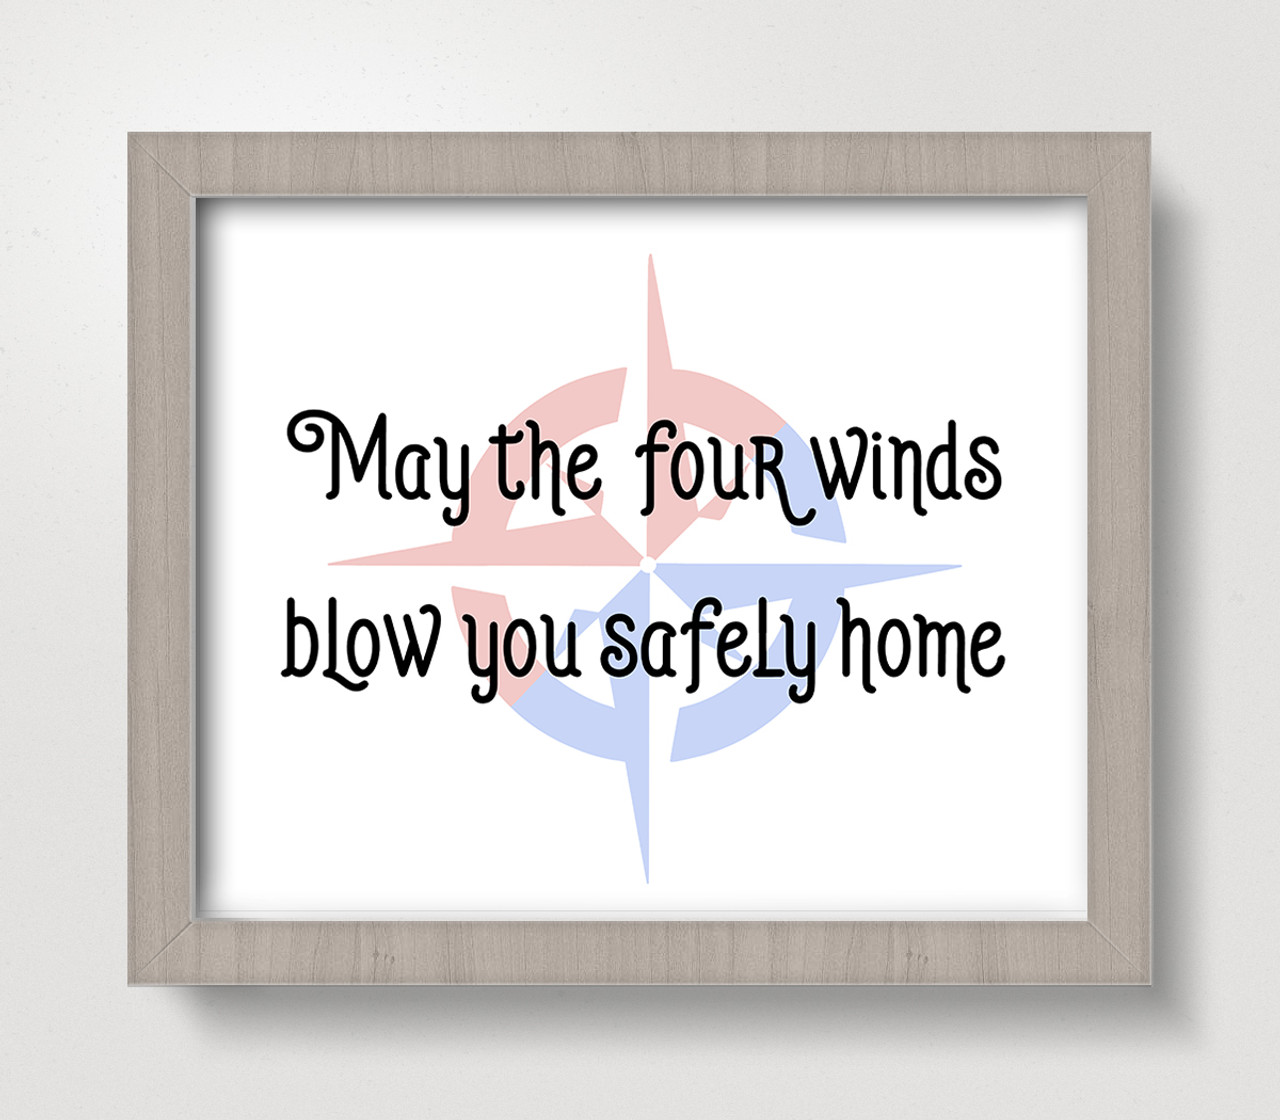 May the Four Winds Blow You Safely Home 8 x 10 Art Print - Wall Decor Home Kitchen